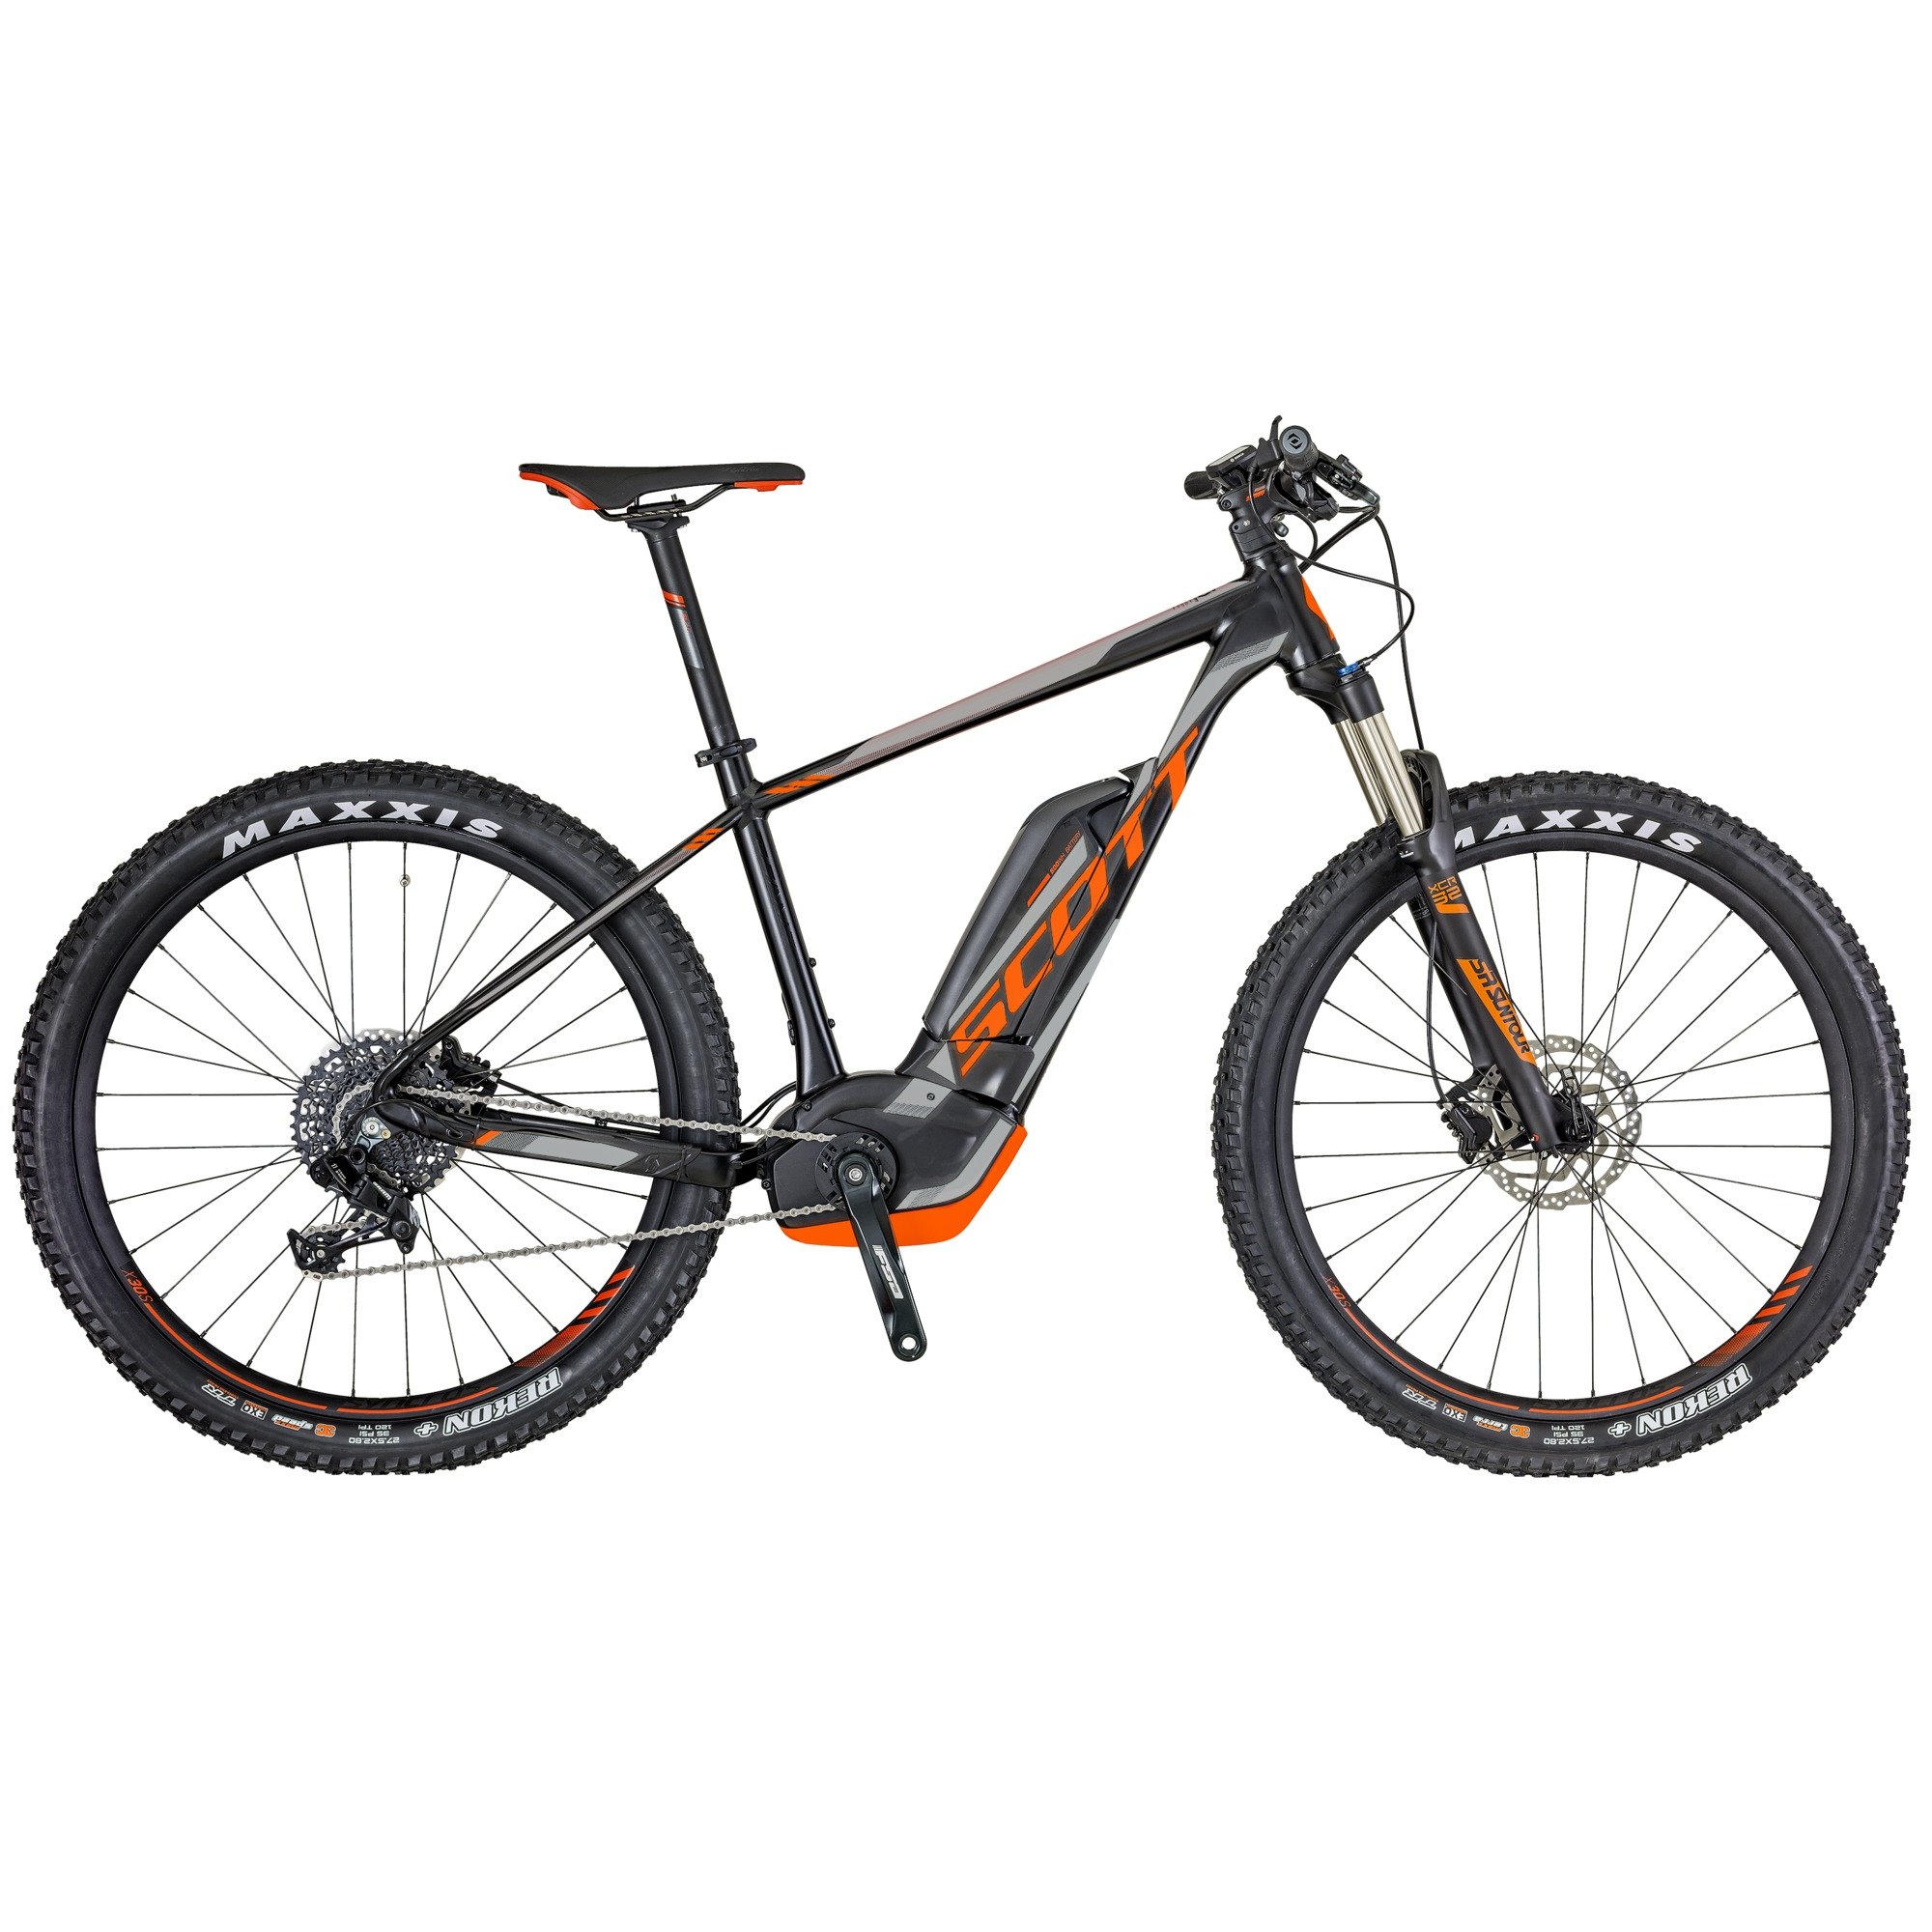 SCOTT E-Scale 940 Bike